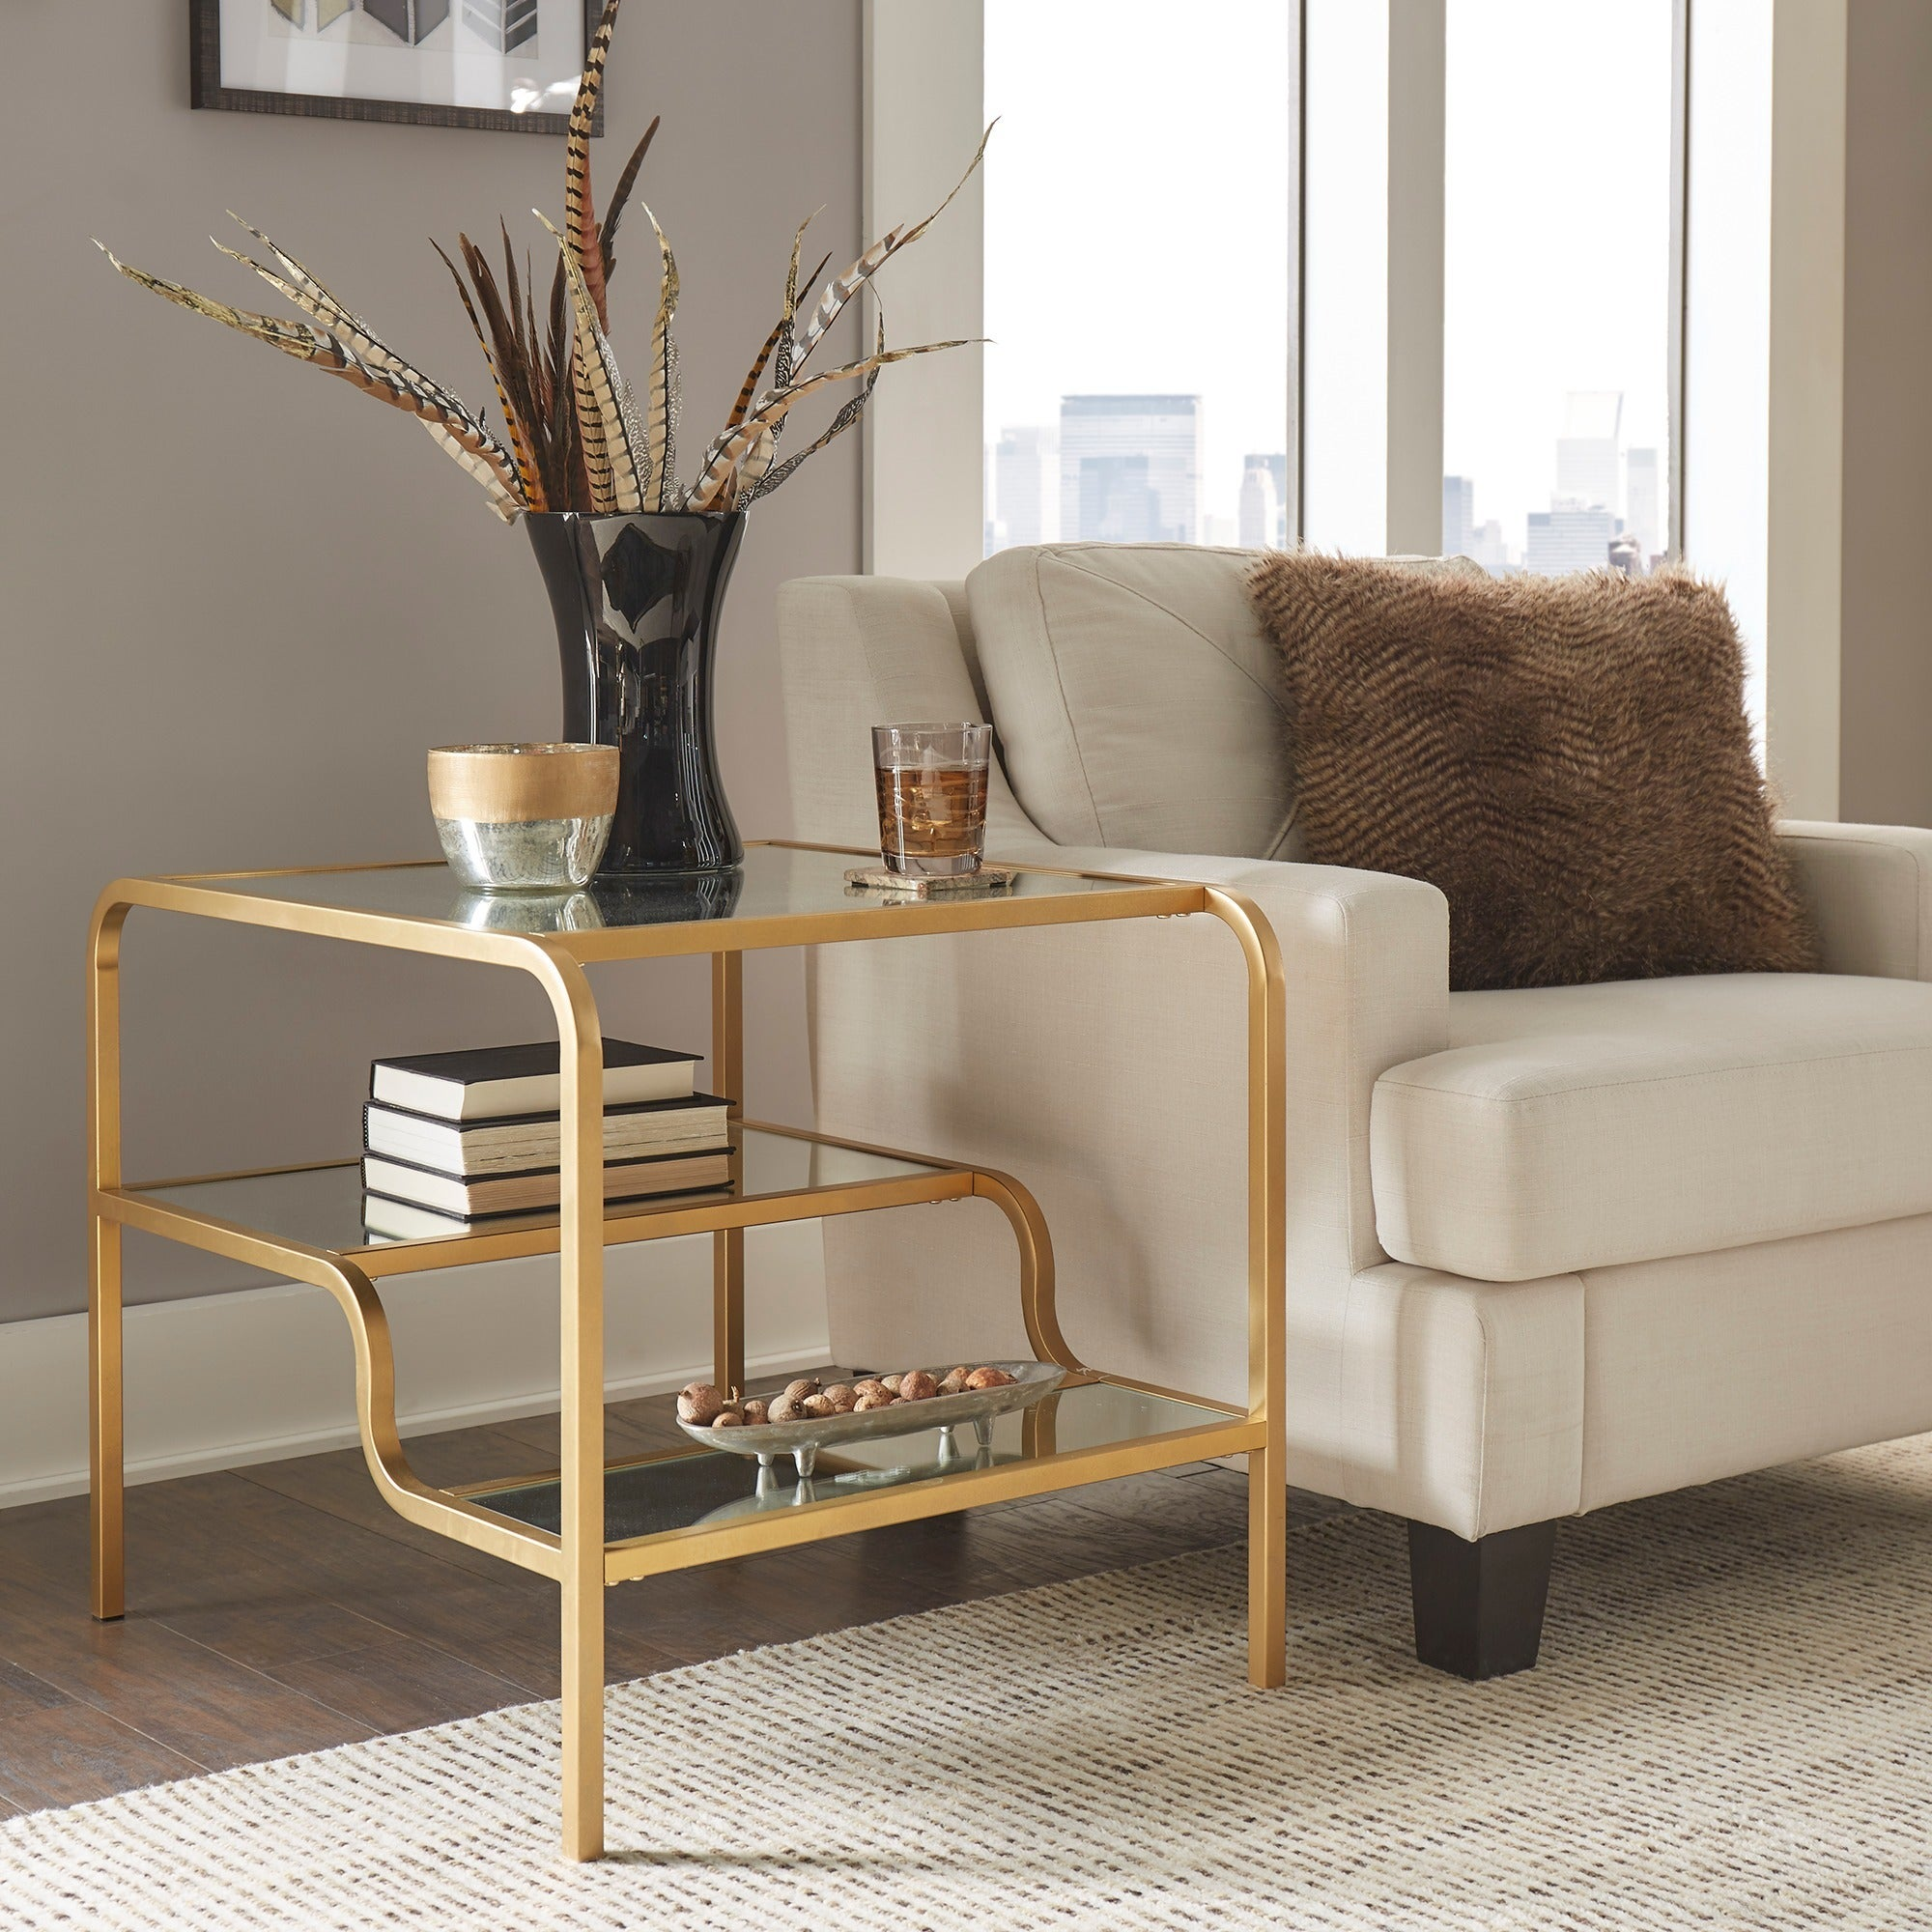 Giana Champagne Gold Mirrored Shelves Side Table by iNSPIRE Q Bold - Free  Shipping Today - Overstock.com - 21887299